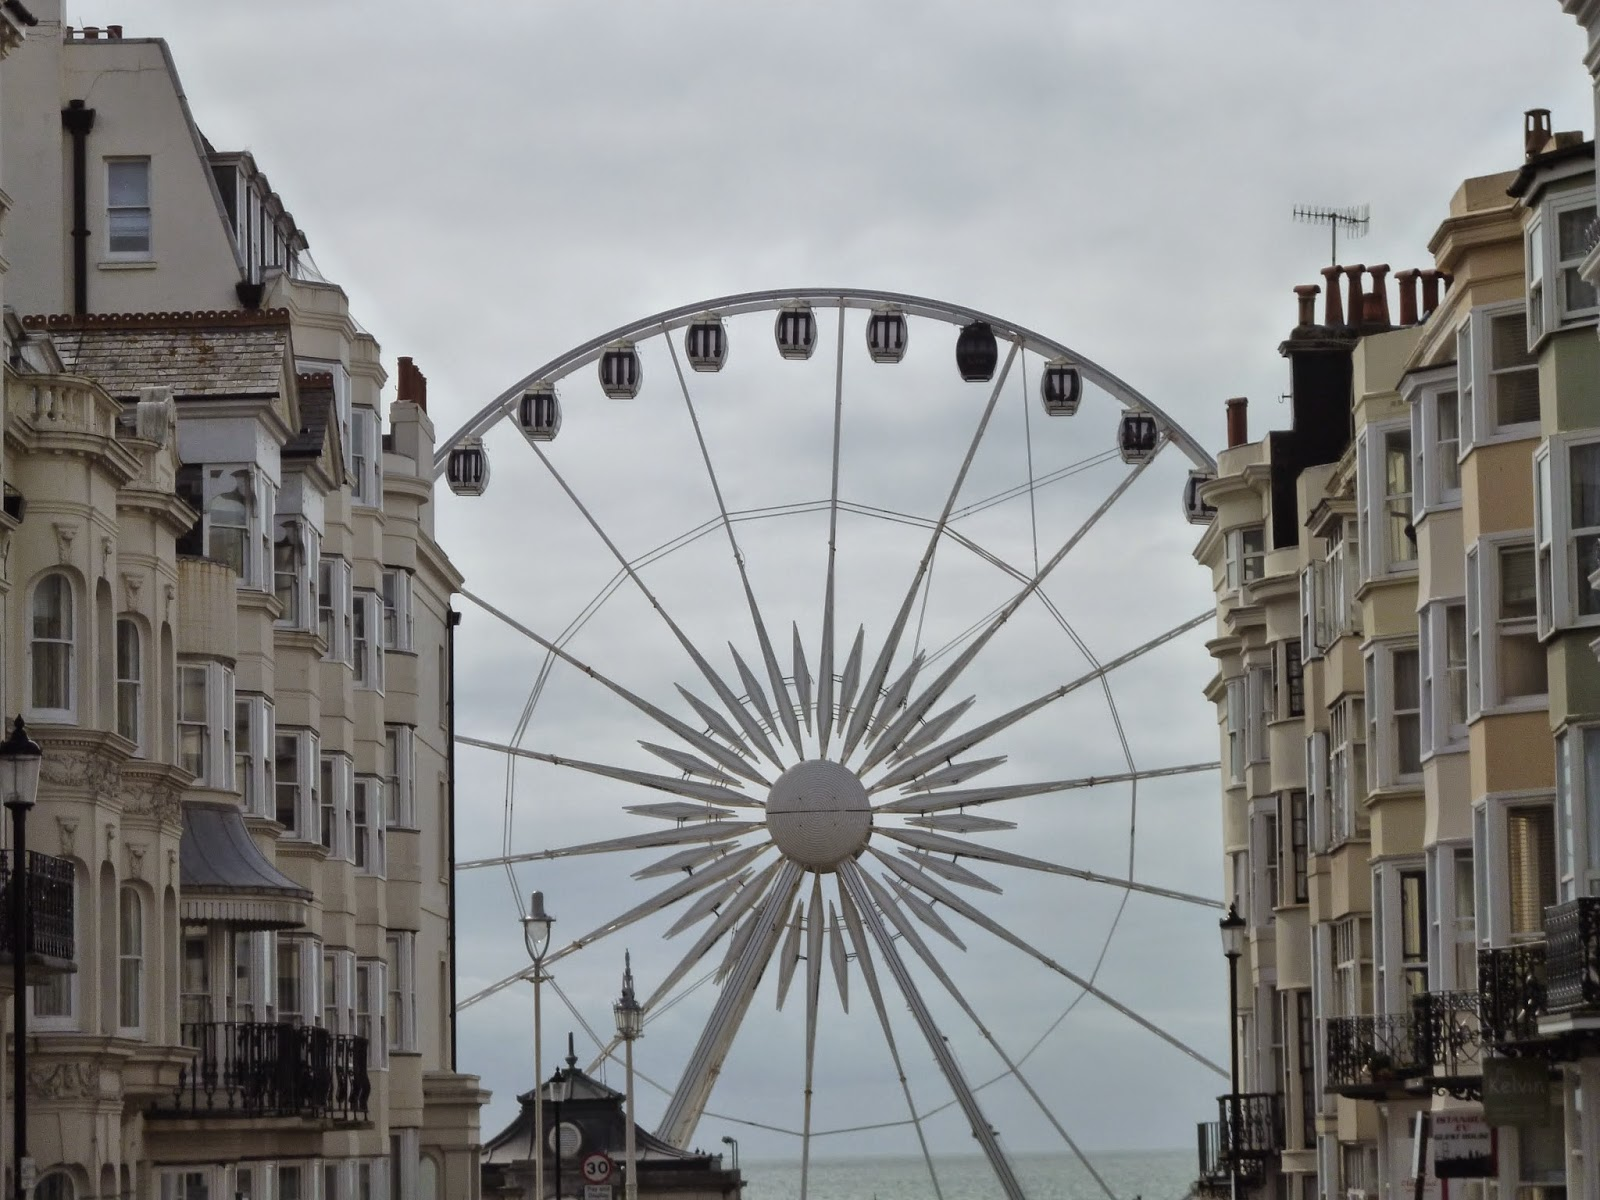 Brighton Big Wheel